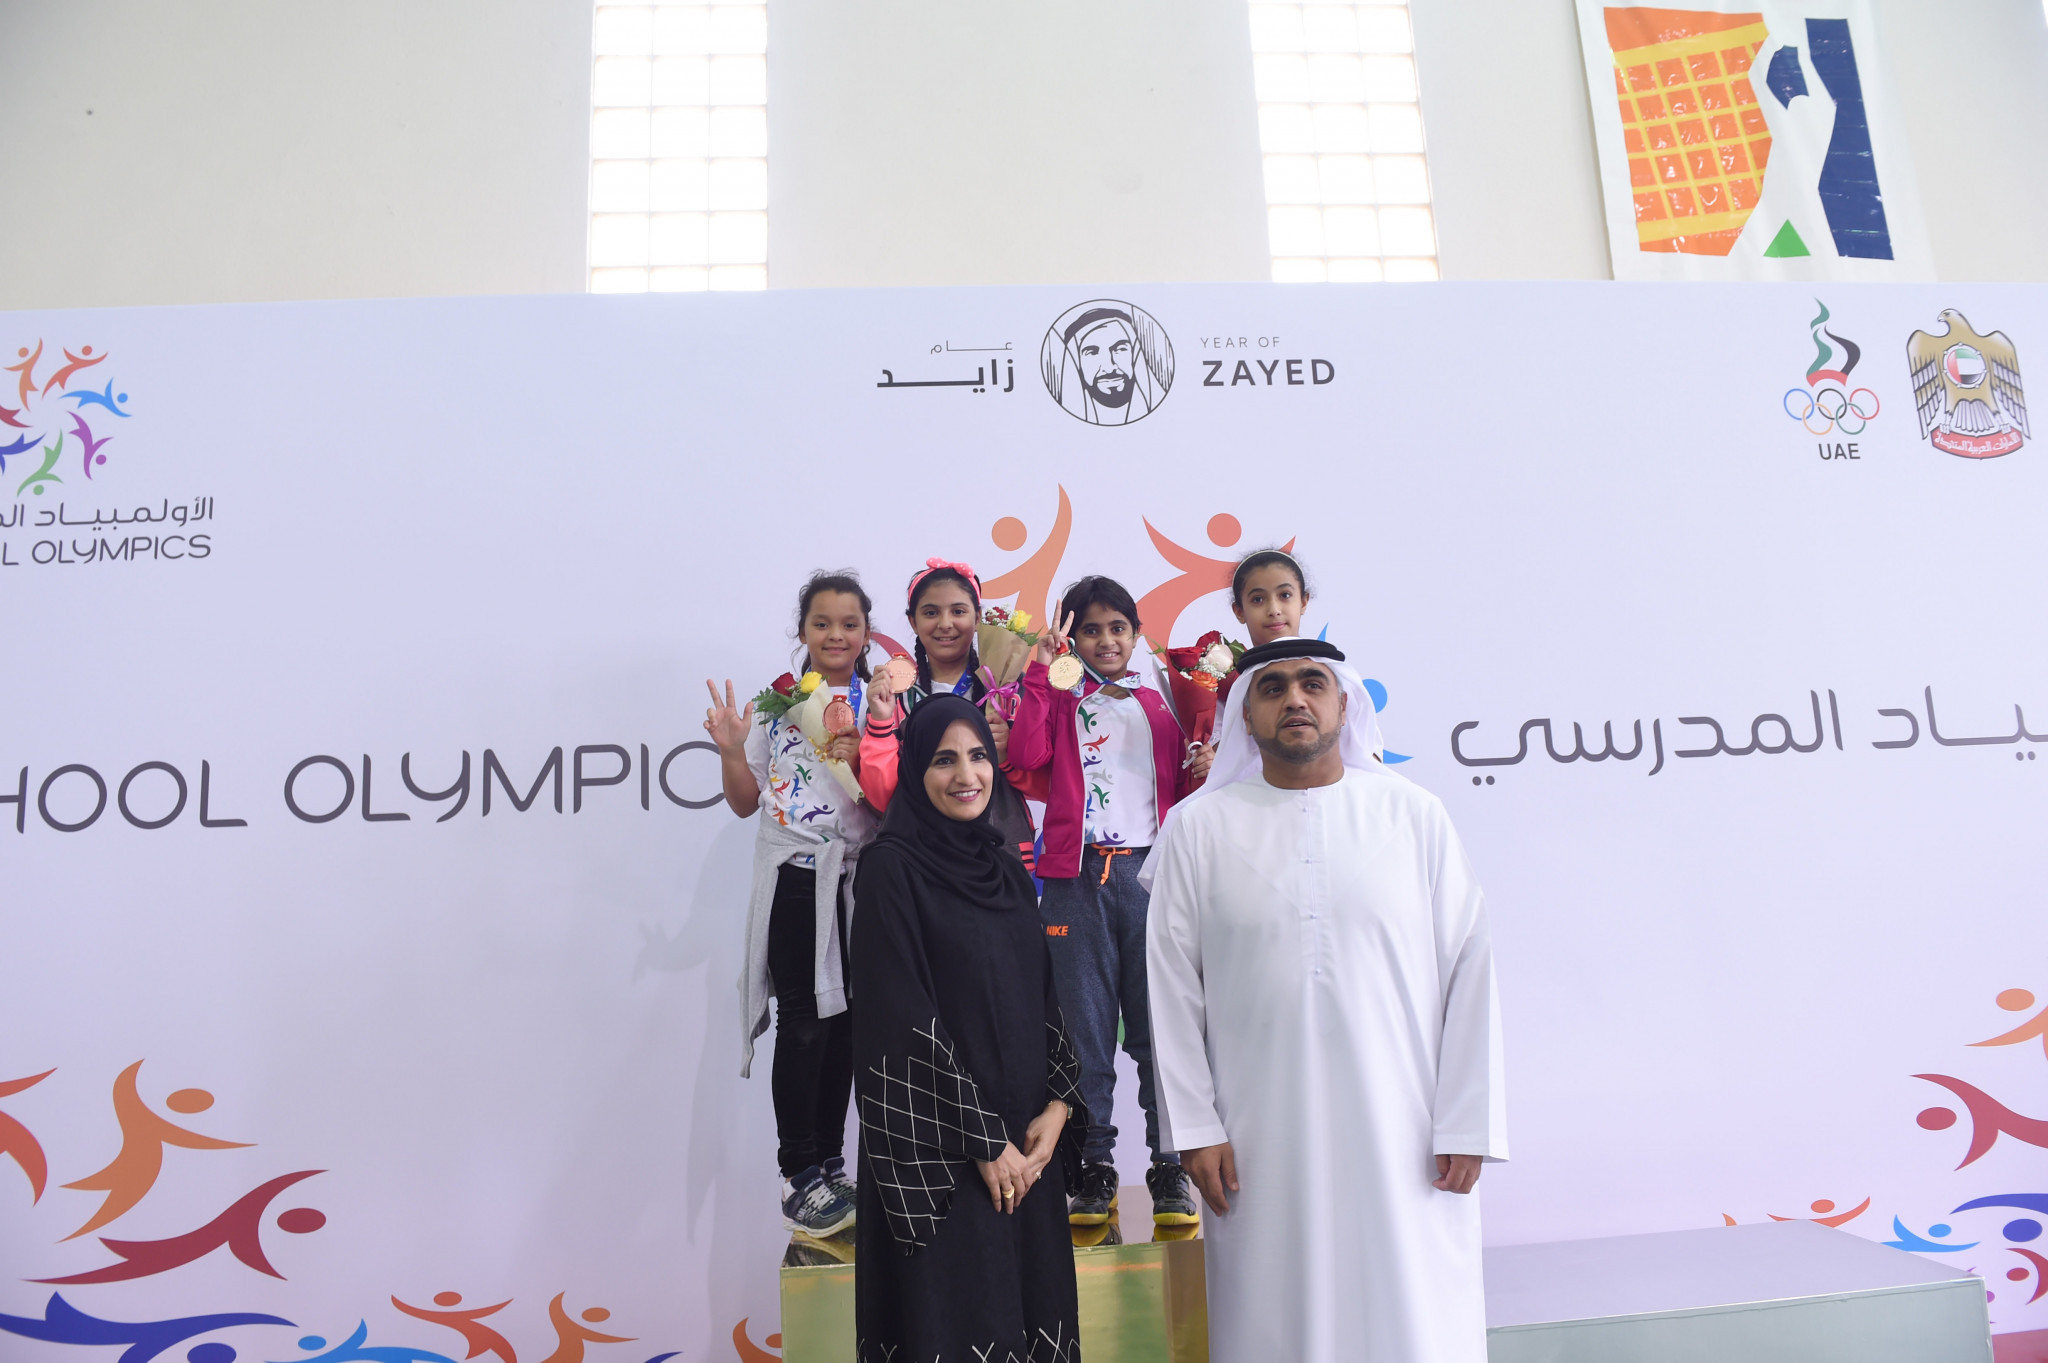 United Arab Emirates National Olympic Committee School Games receives boost after more girls allowed to compete